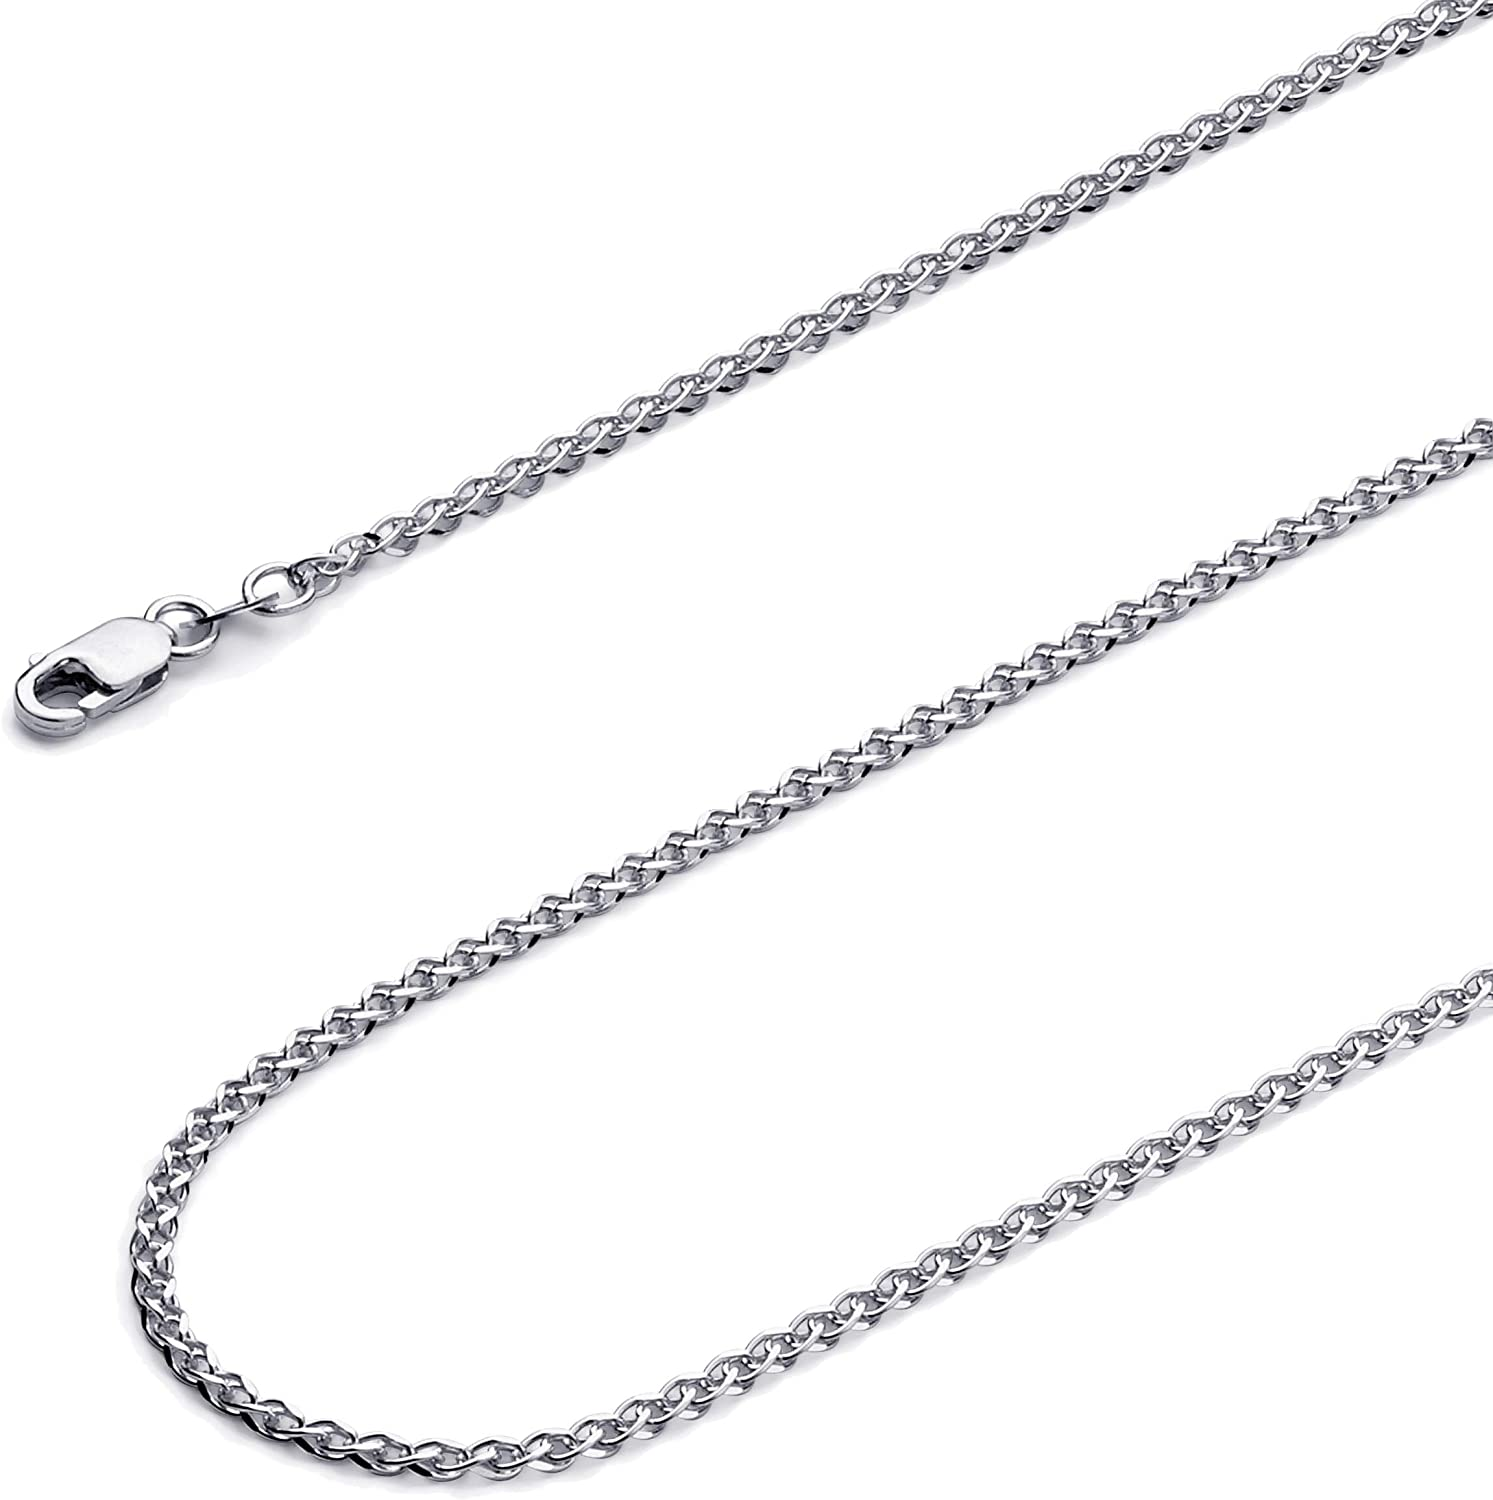 Wellingsale 14k Yellow and White Gold Polished Solid 2mm Flat Open Wheat Chain Necklace